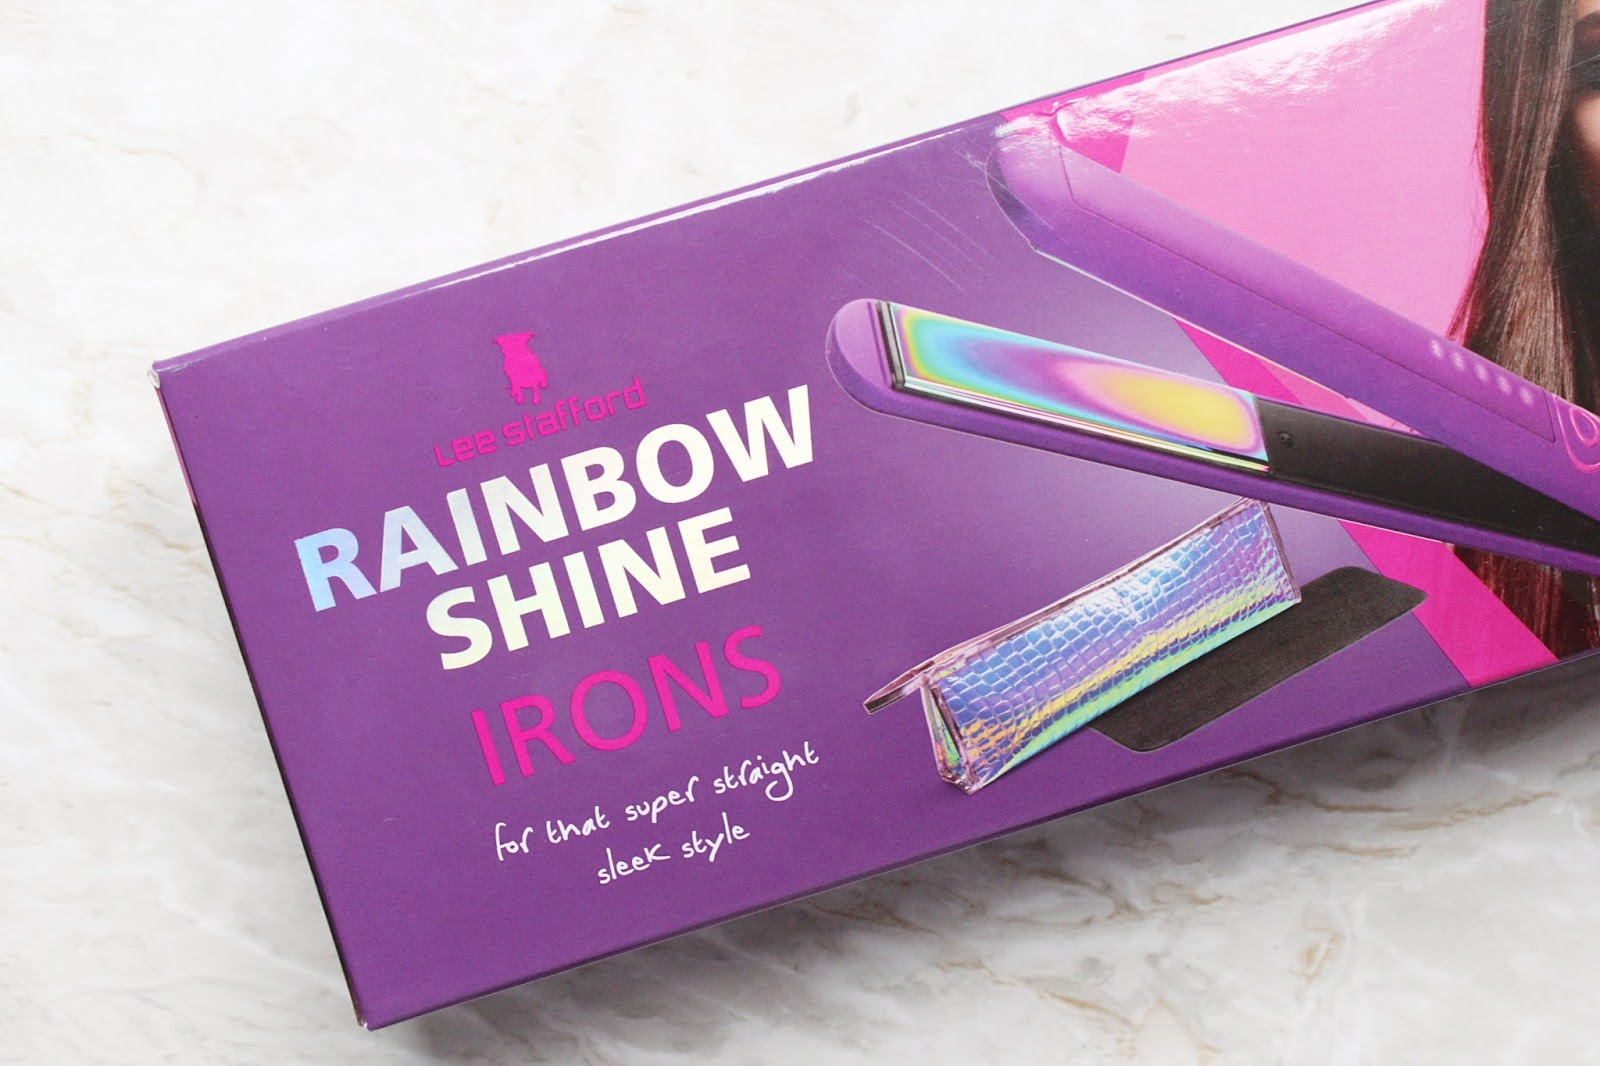 Lee Stafford Rainbow Shine Straightener Reviewed